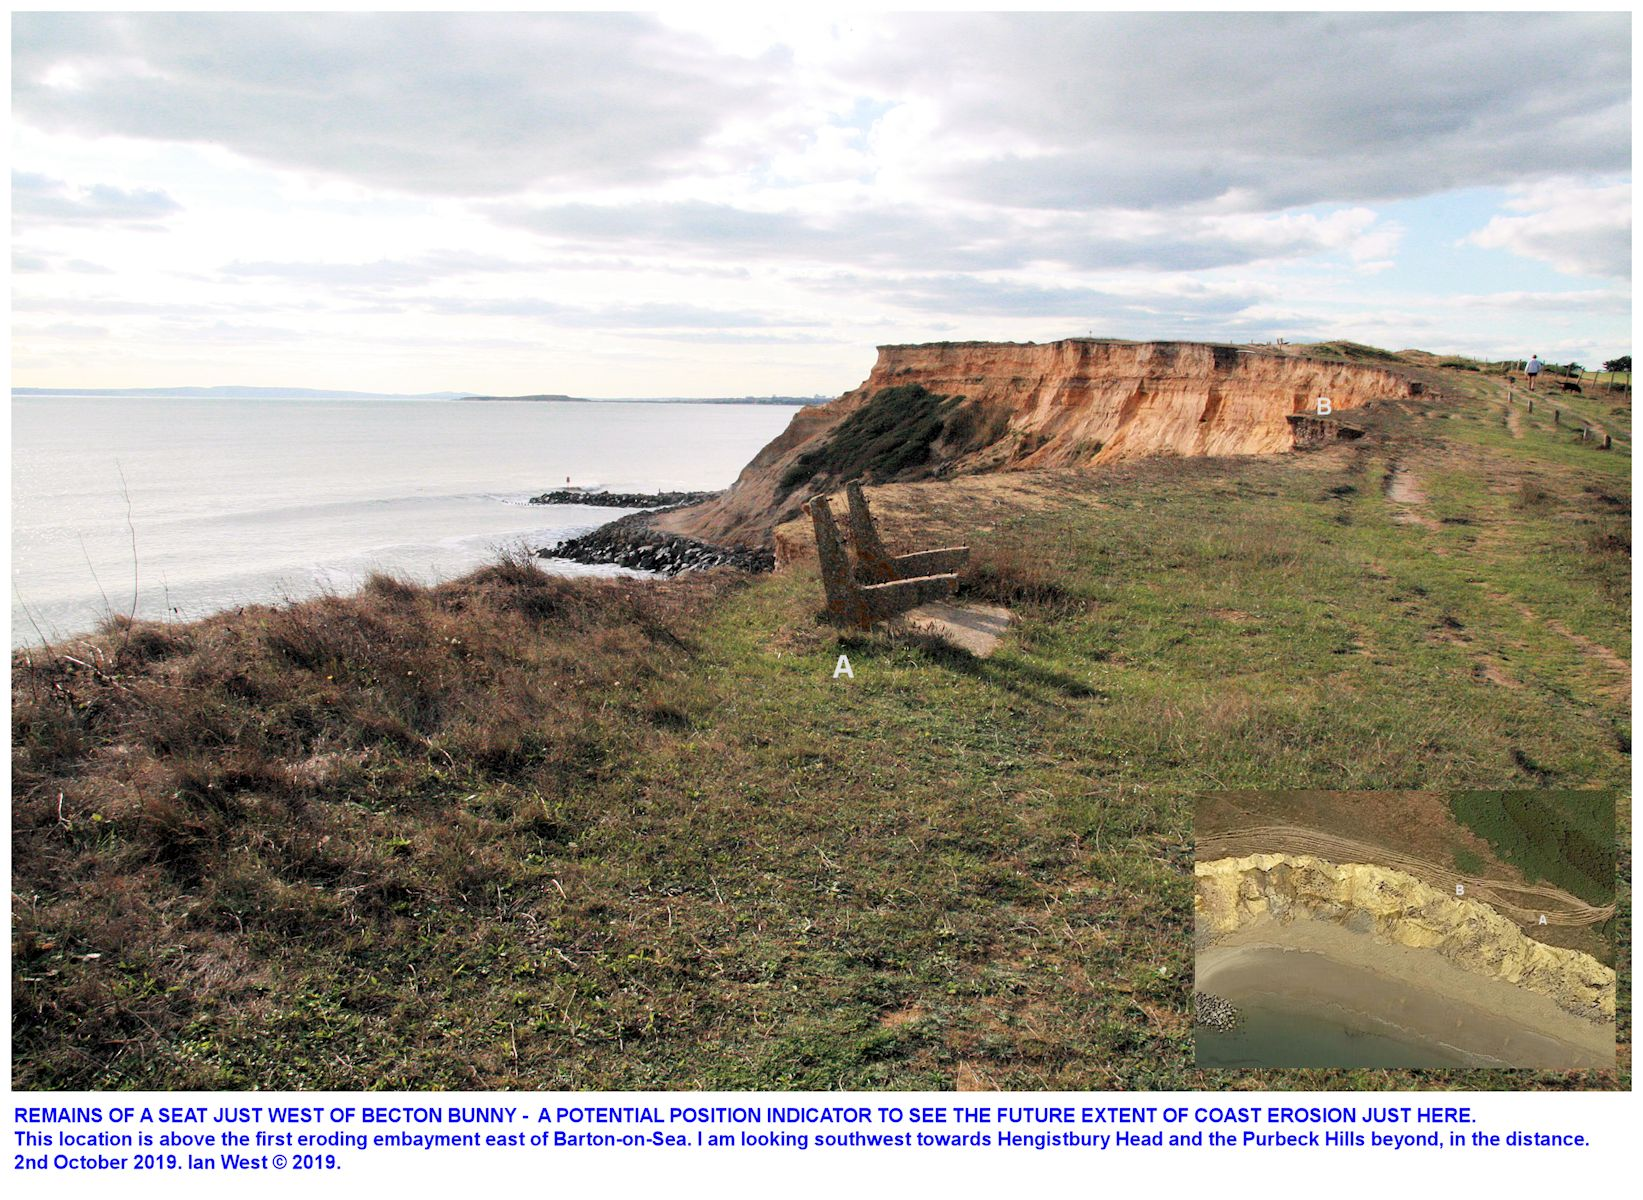 A seat with the timbers removed, close to the eroding cliff edge, just west of Becton Bunny, near Barton-on-Sea, as seen on the 2nd October 2019